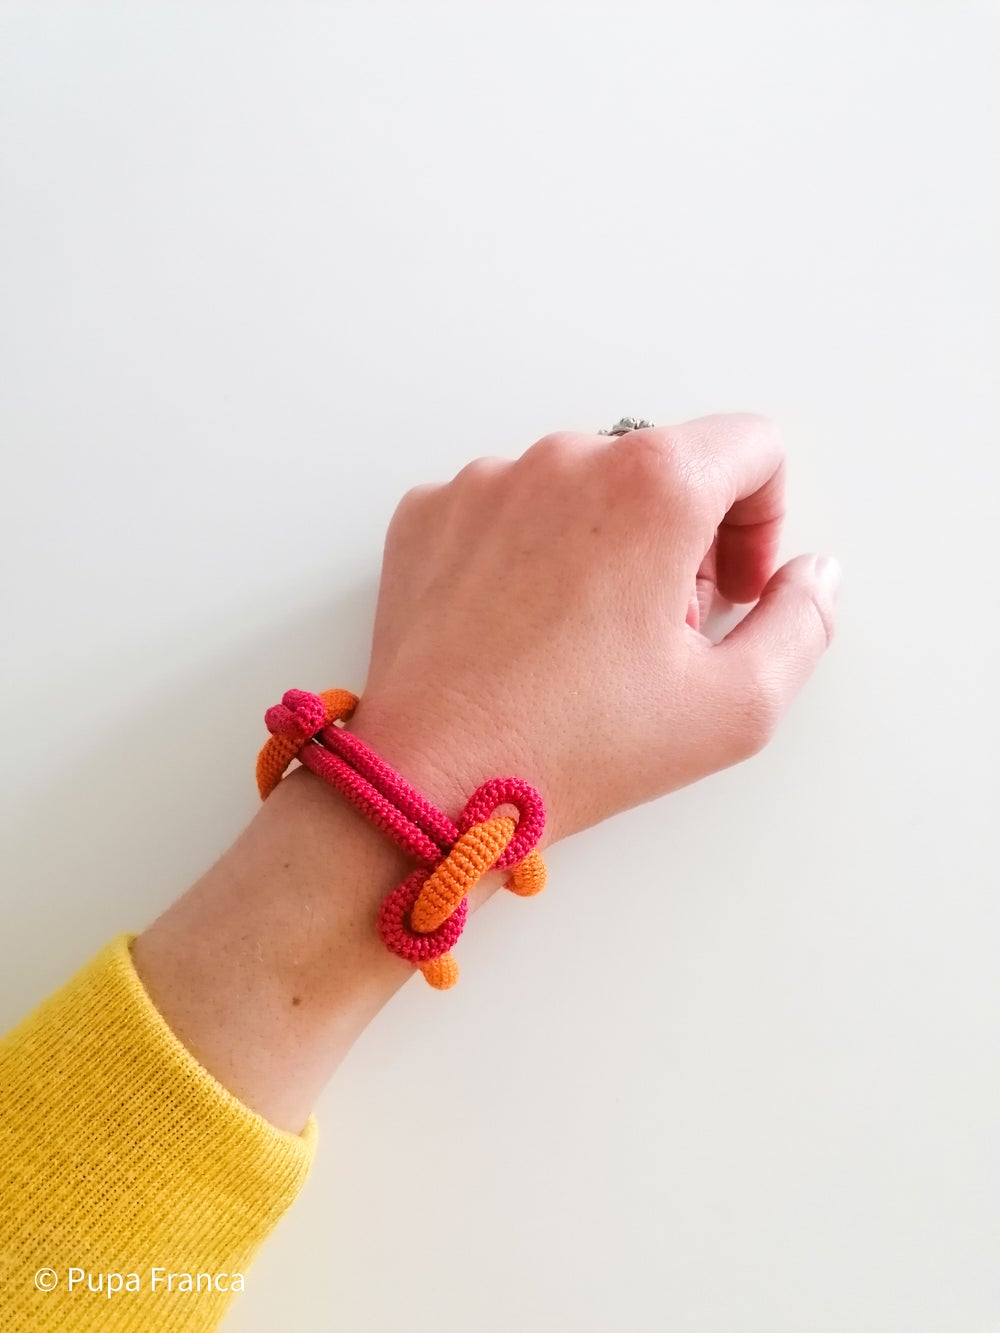 Image of Crochet Chain Bracelet in Pink and Orange